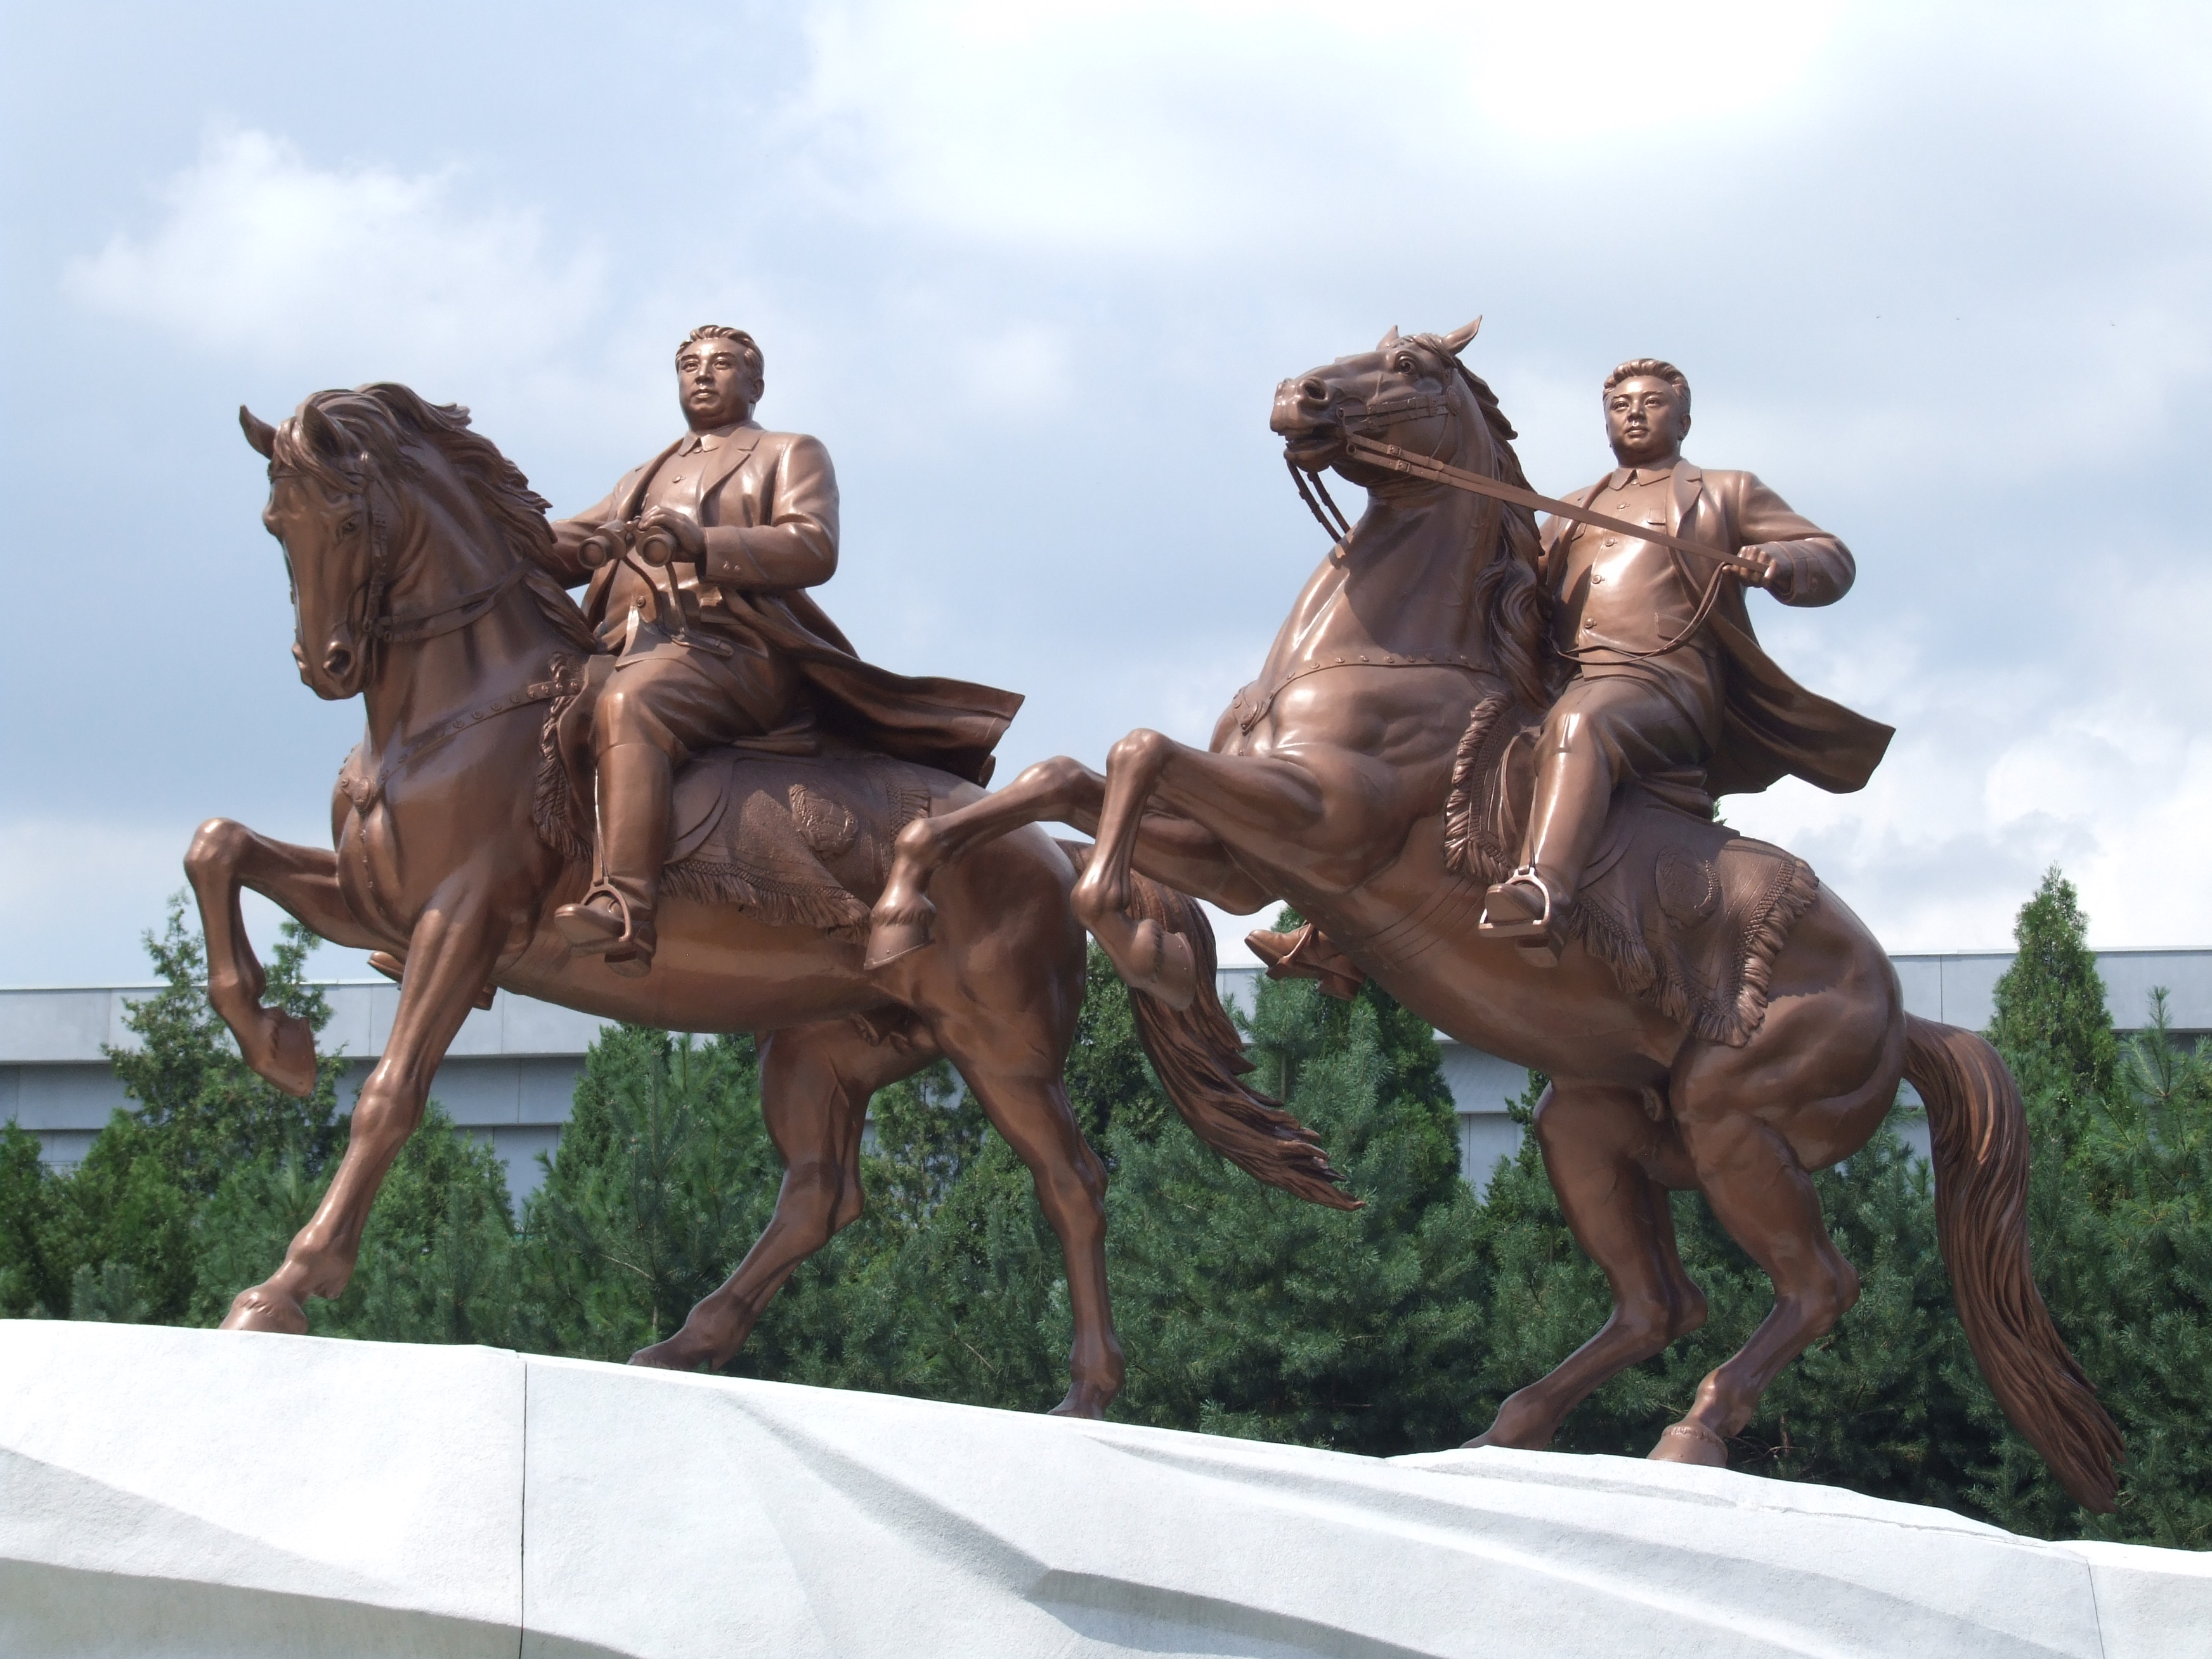 Statue of Kim Il-sung and Kim Jong-il riding horses at Mansudae Art Studio in Pyongyang and officially revealed on the Day of the Shining Star in 2012.